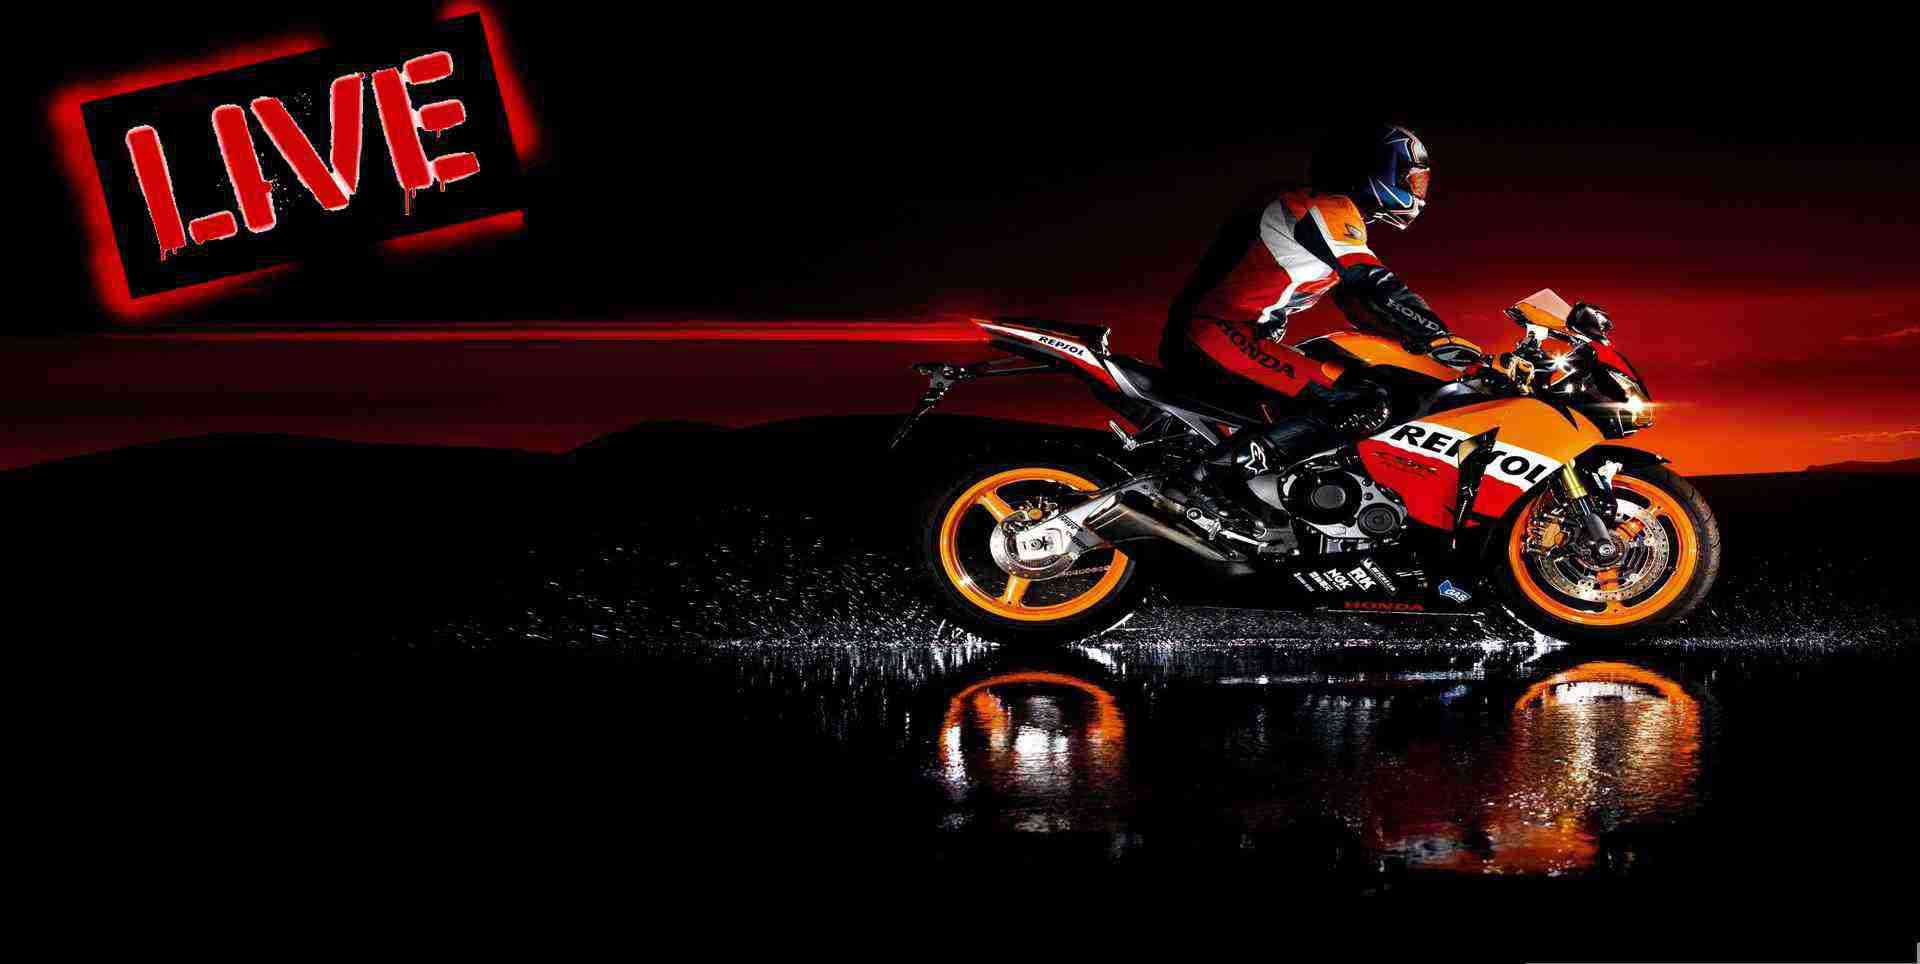 Live 2014 Malaysian Motorcycle Grand Prix Online